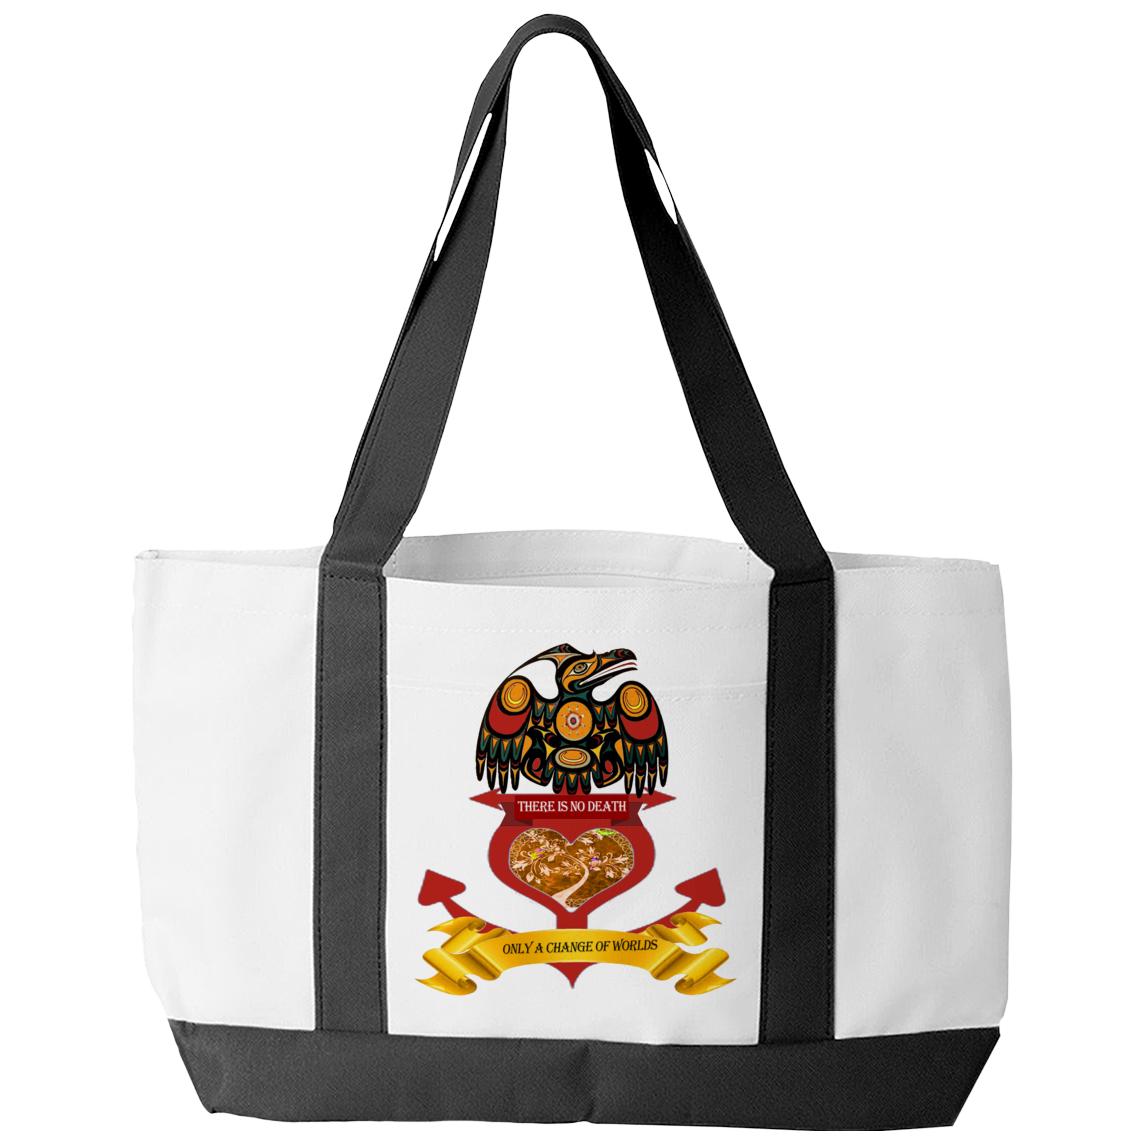 Change Of Worlds Tote Bag - Native American Tote Bag